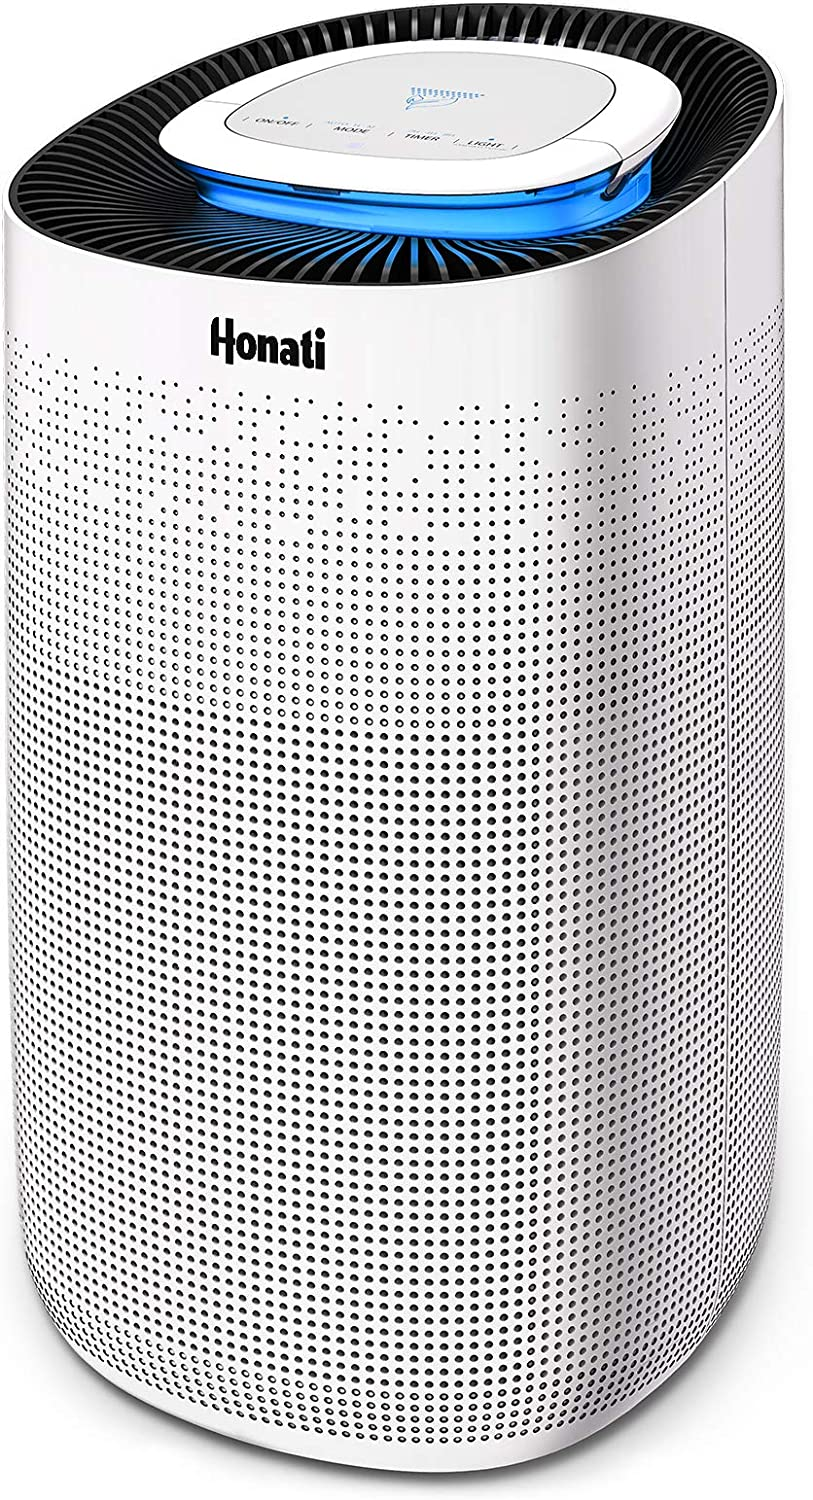 Honati Air Purifier for Home,True HEPA Filter for Large Room,Quiet Bedroom Air Cleaner for Smoke, Dust, Mold, Pollen,Odors, Allergies and Pet Hair